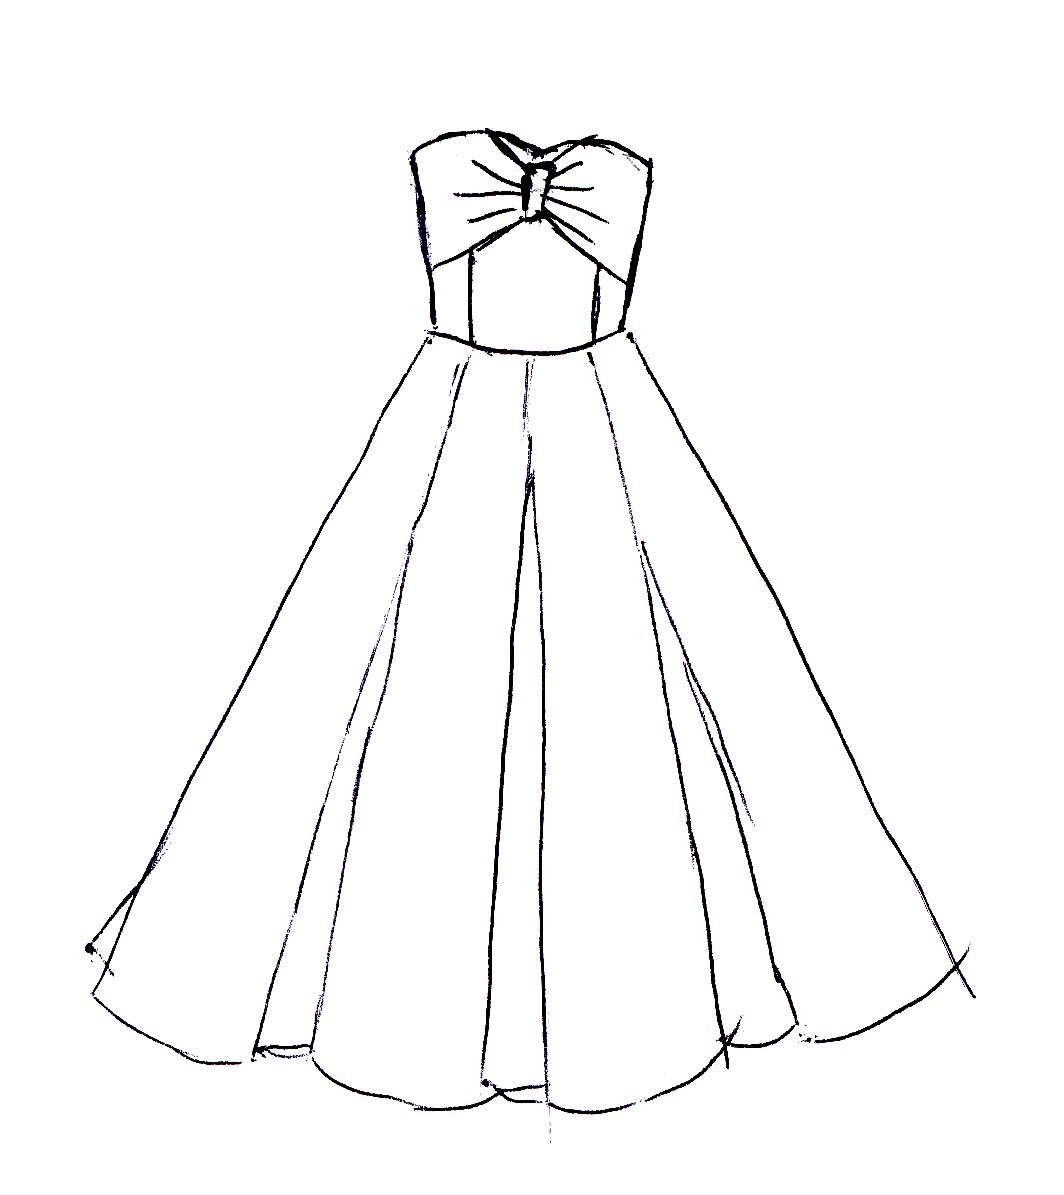 Dress Designs Drawing At Getdrawings Com Free For